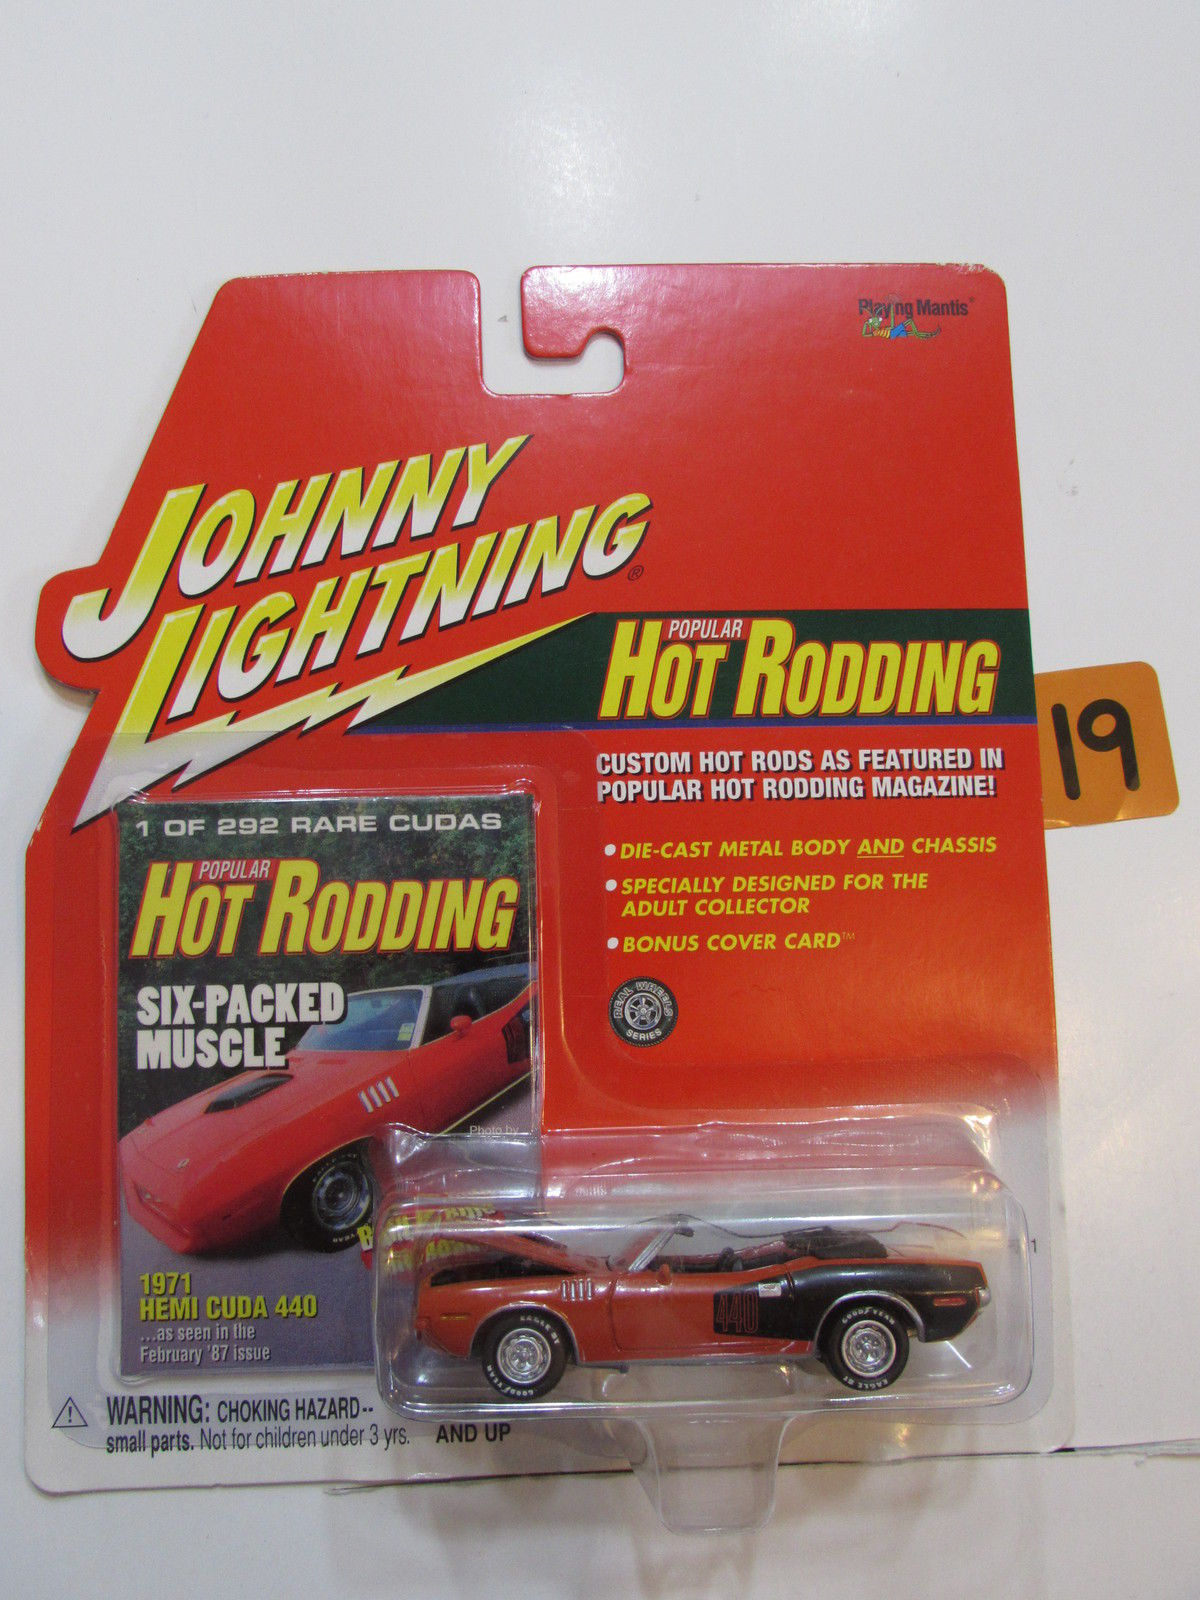 JOHNNY LIGHTNING 2001 HOT RODDING 1971 HEMI CUDA 440